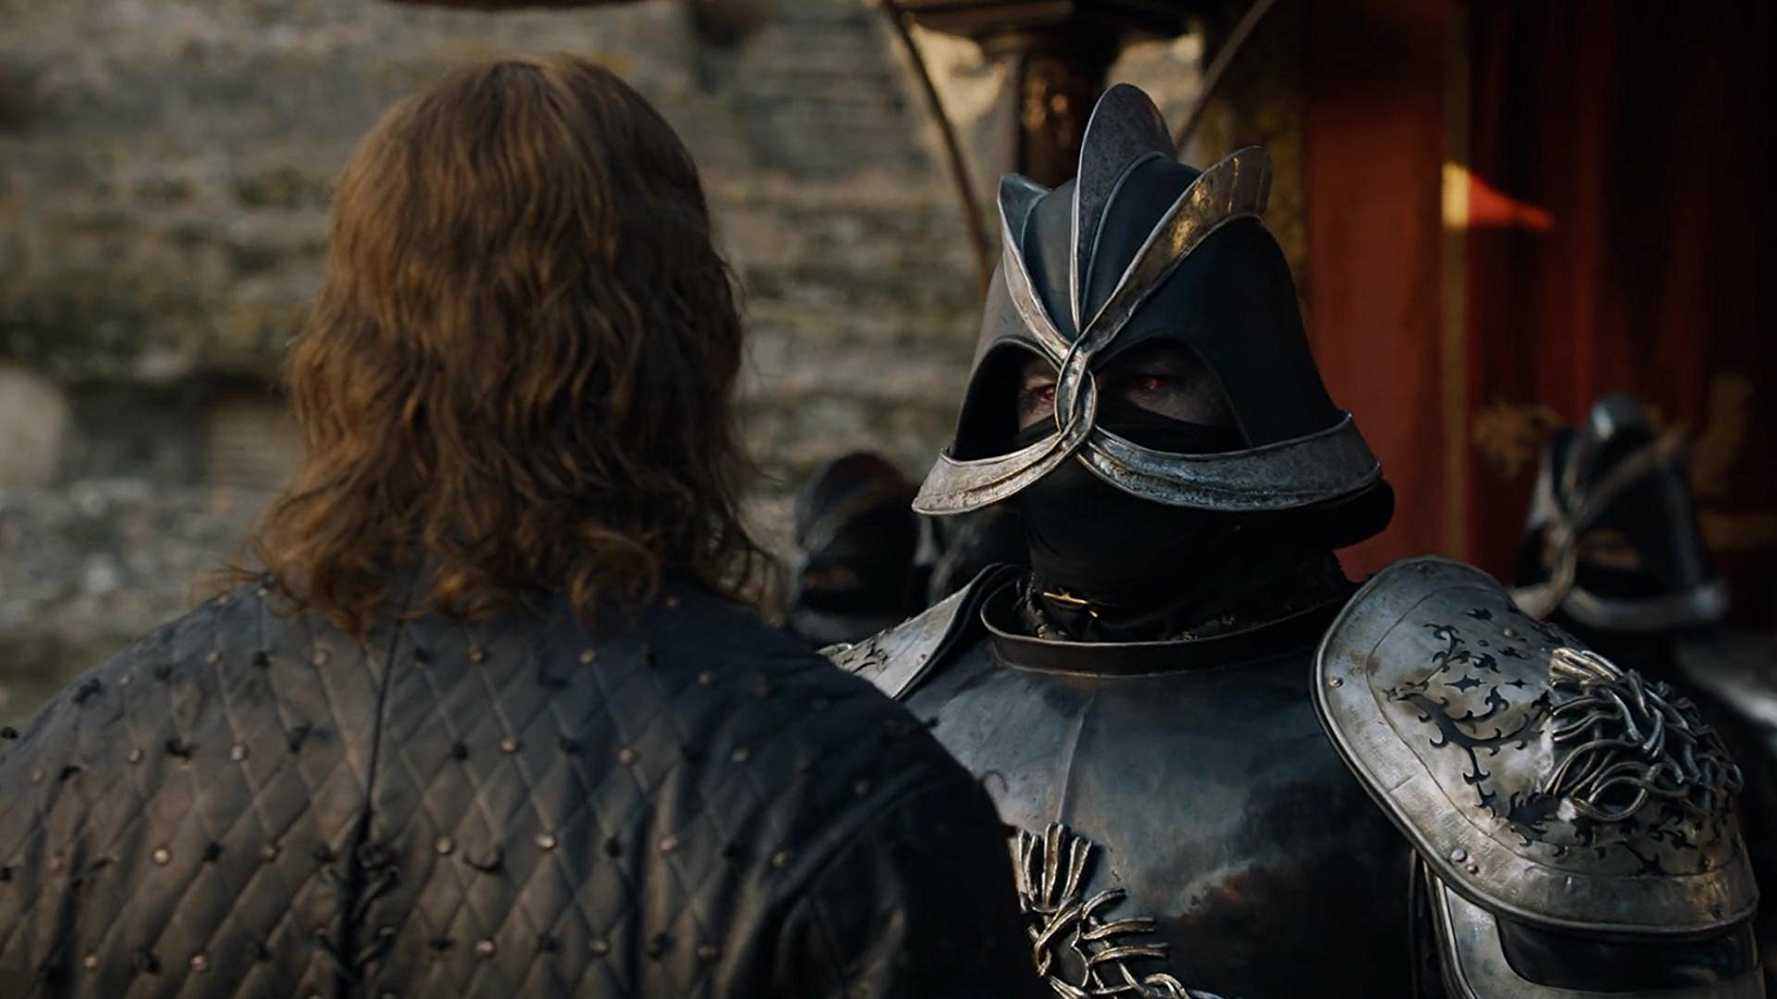 Clegane almost challenged his brother for a face off in the next season. (IMDb)